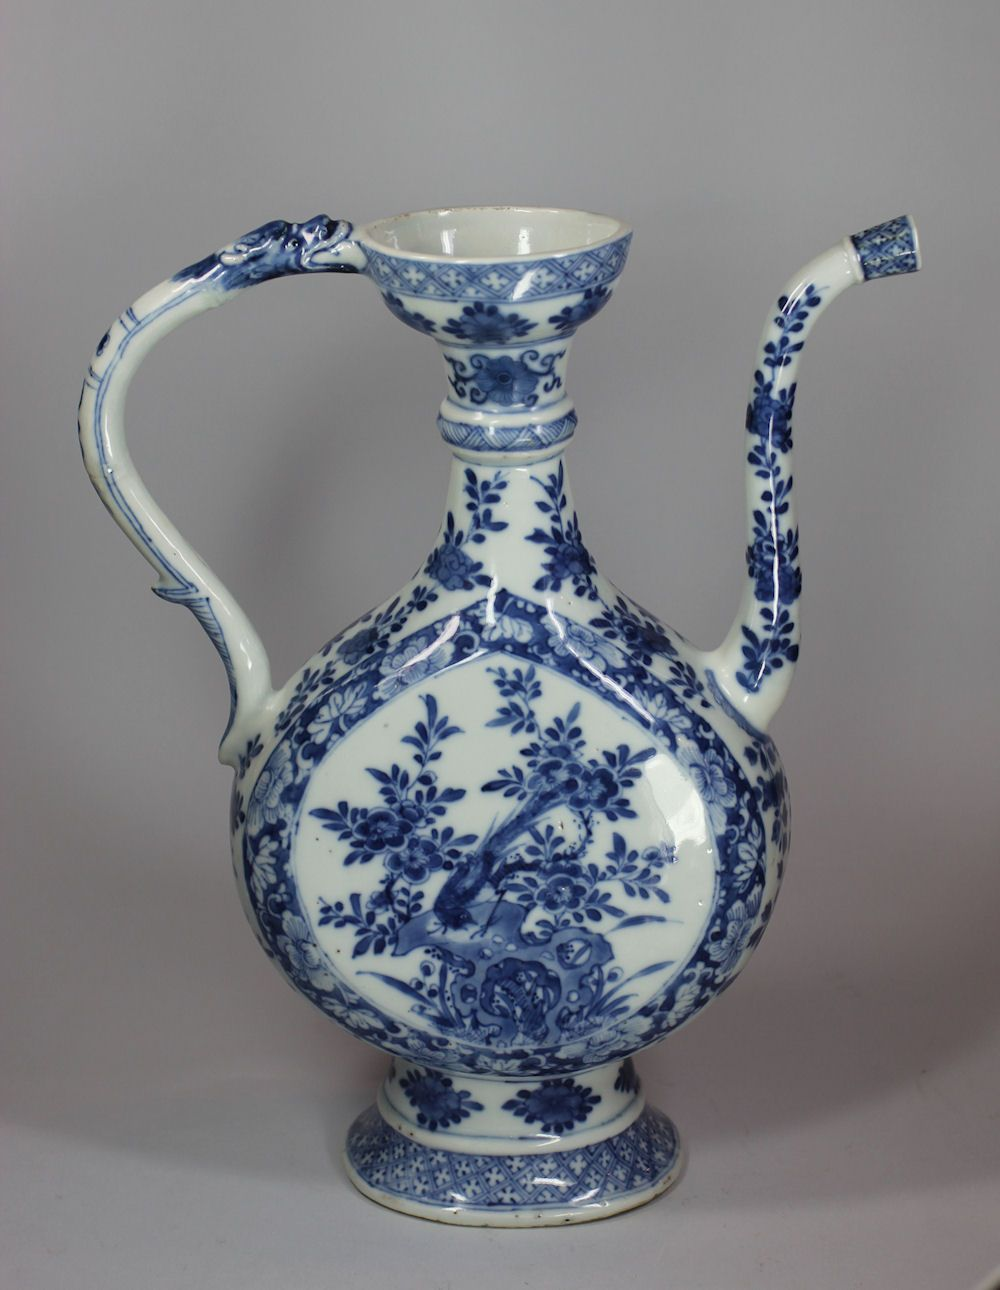 Chinese blue and white ewer aftaba kangxi 1662 1722 made for chinese blue and white ewer aftaba kangxi made for the islamic reviewsmspy